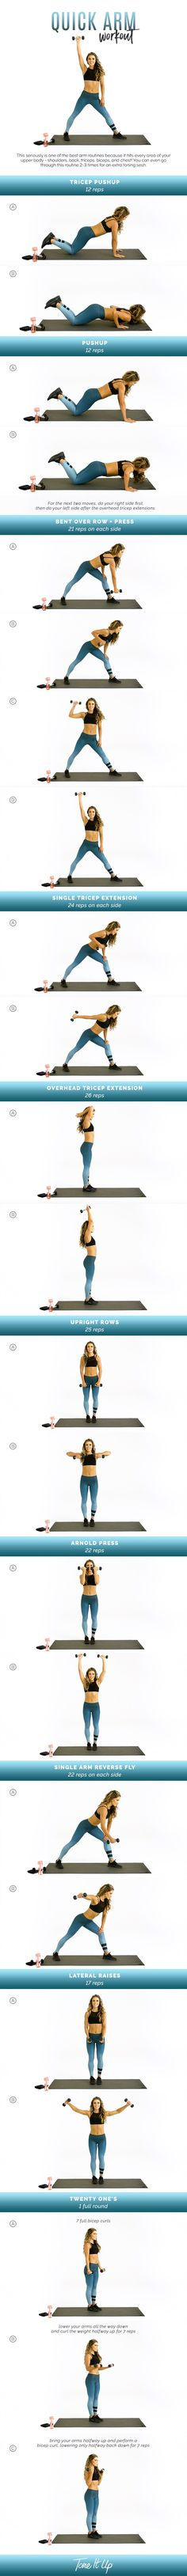 New Quick Arm workout! This is the perfect quickie routine to fit in before hitting happy hour or meeting up with a date. Check out the video on ToneItUp.com!